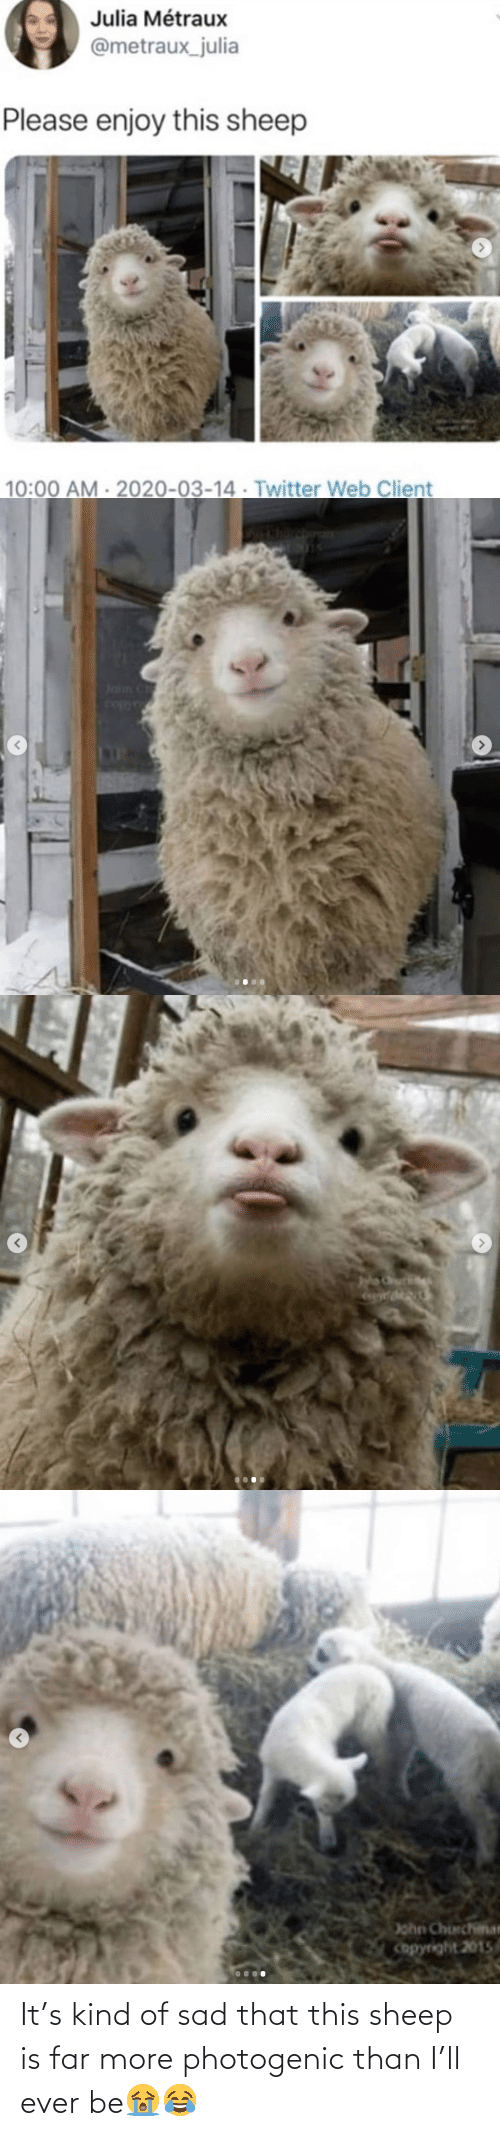 Far: It's kind of sad that this sheep is far more photogenic than I'll ever be😭😂